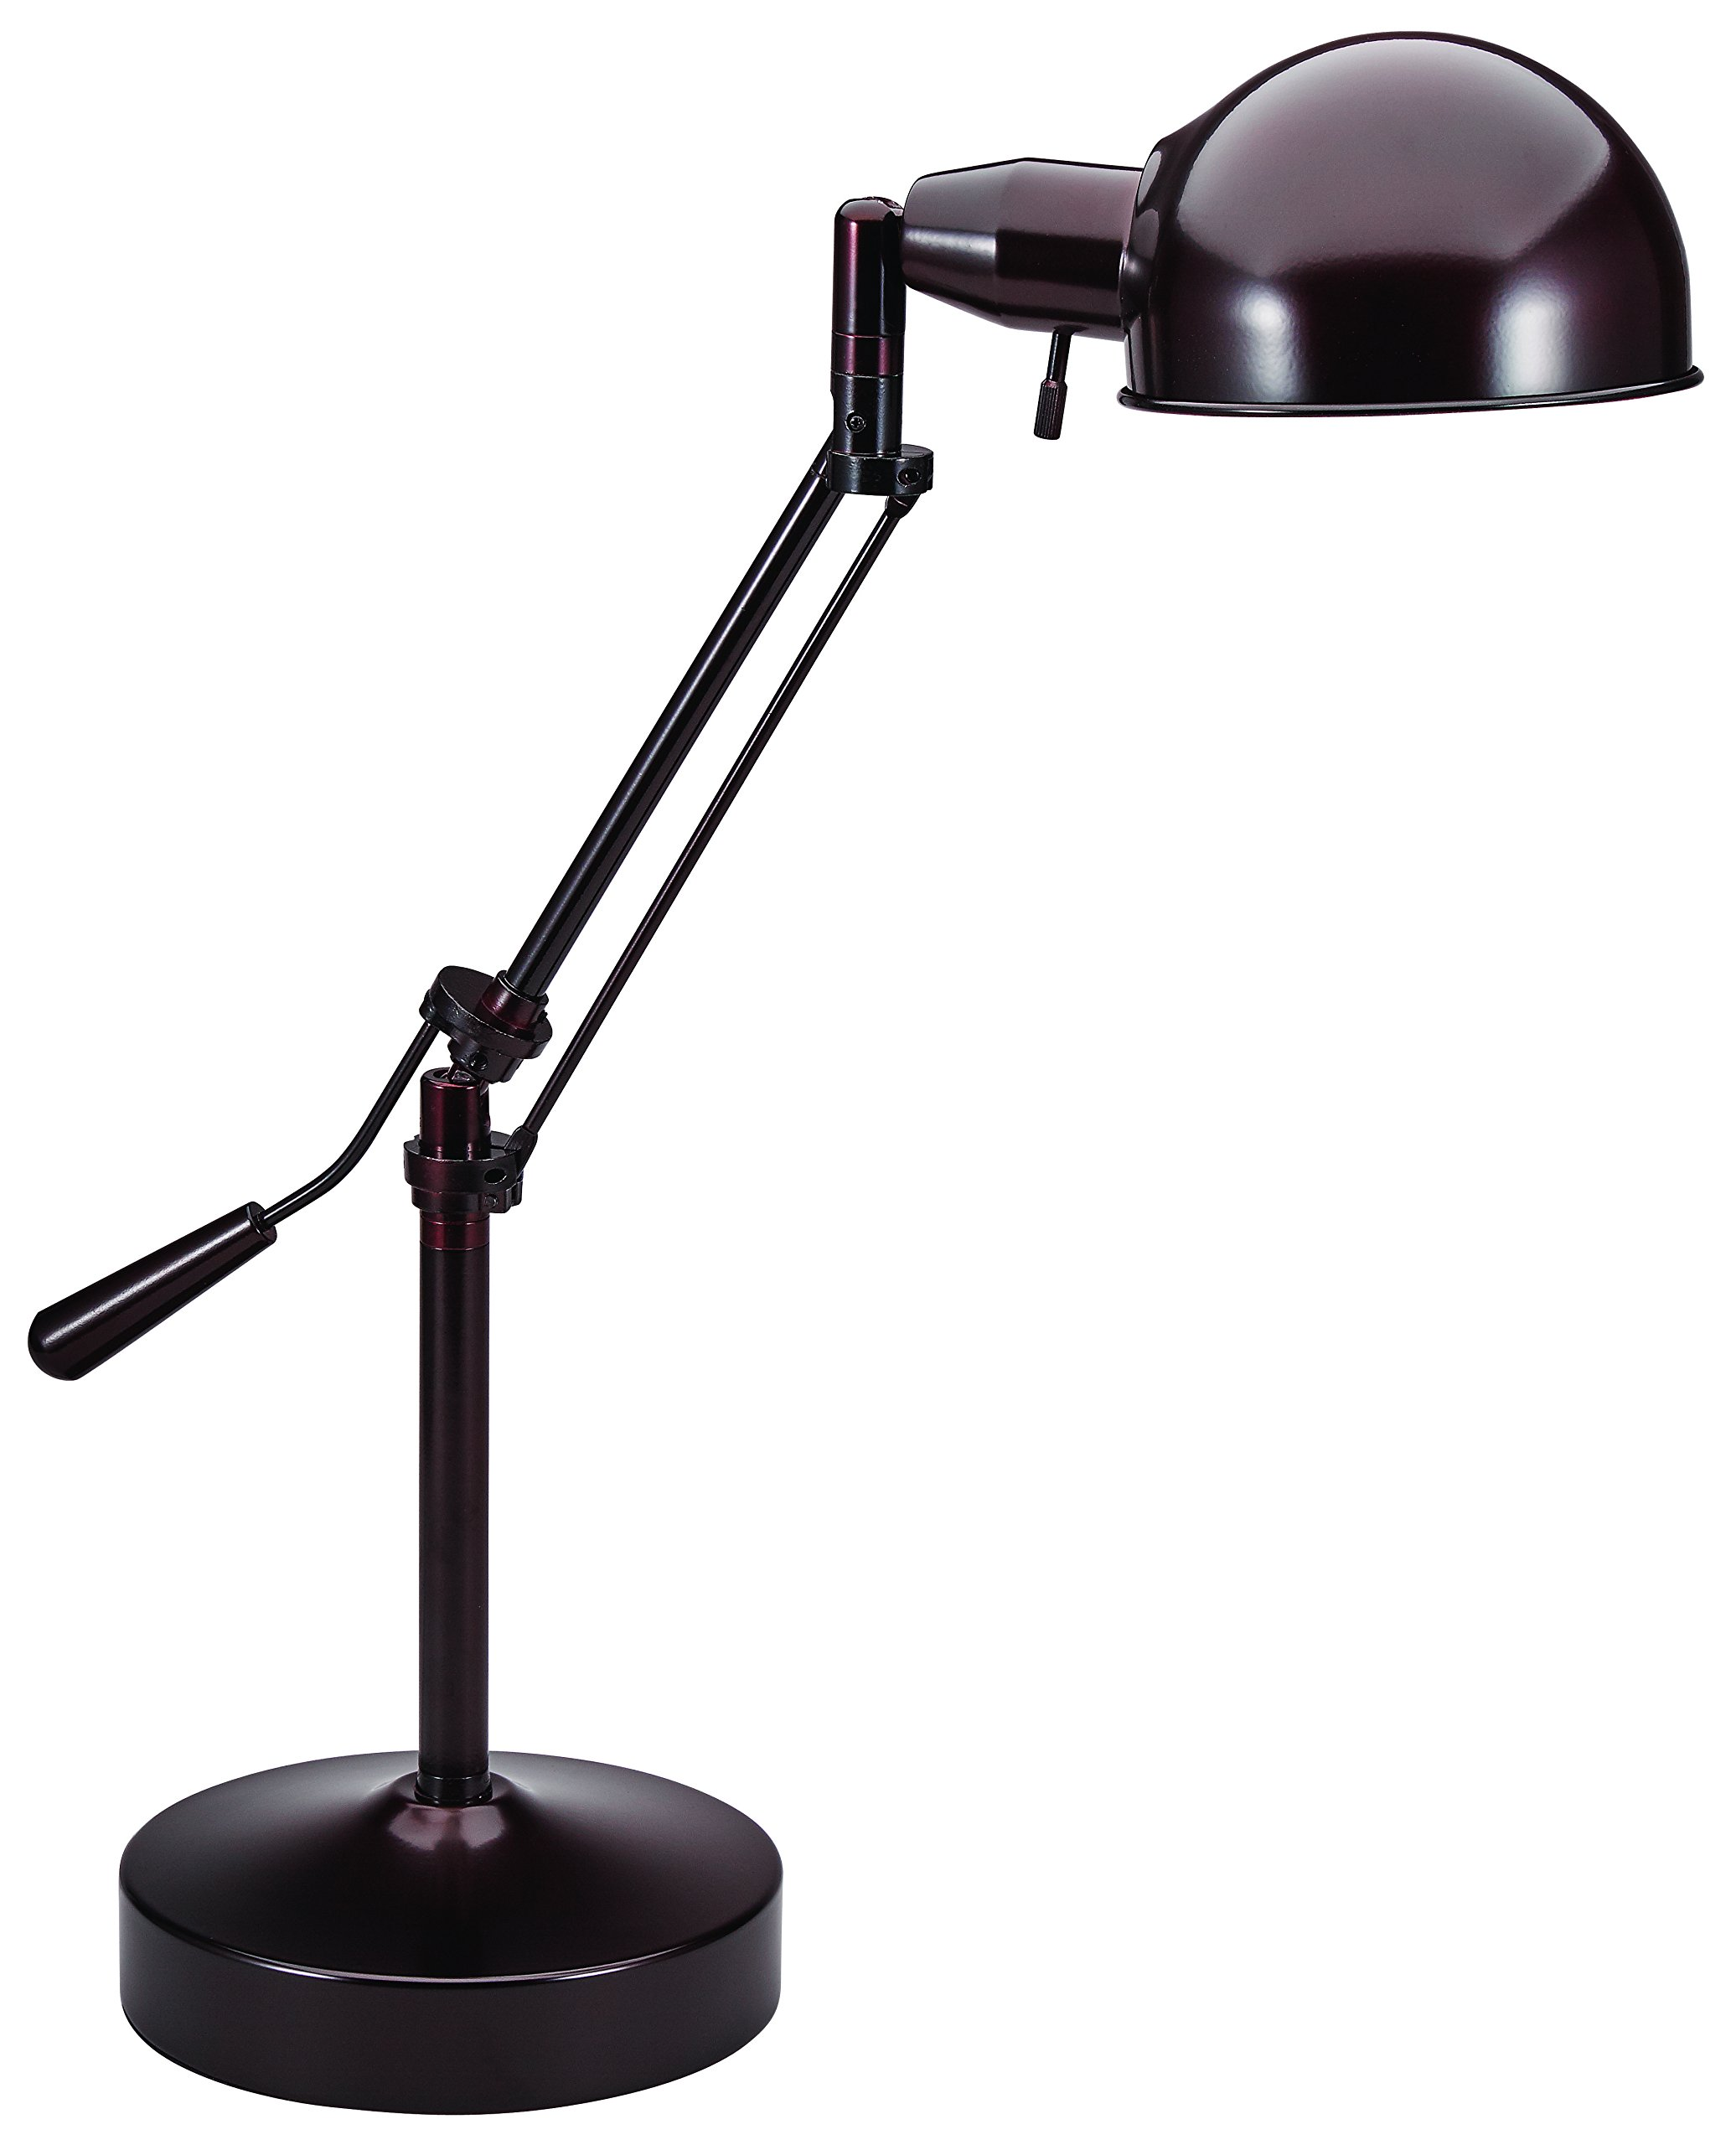 V-LIGHT Pharmacy Style CFL Desk Lamp with Height-Adjustable Tilt-Arm Feature, Antique Bronze (VS687372BRZ)